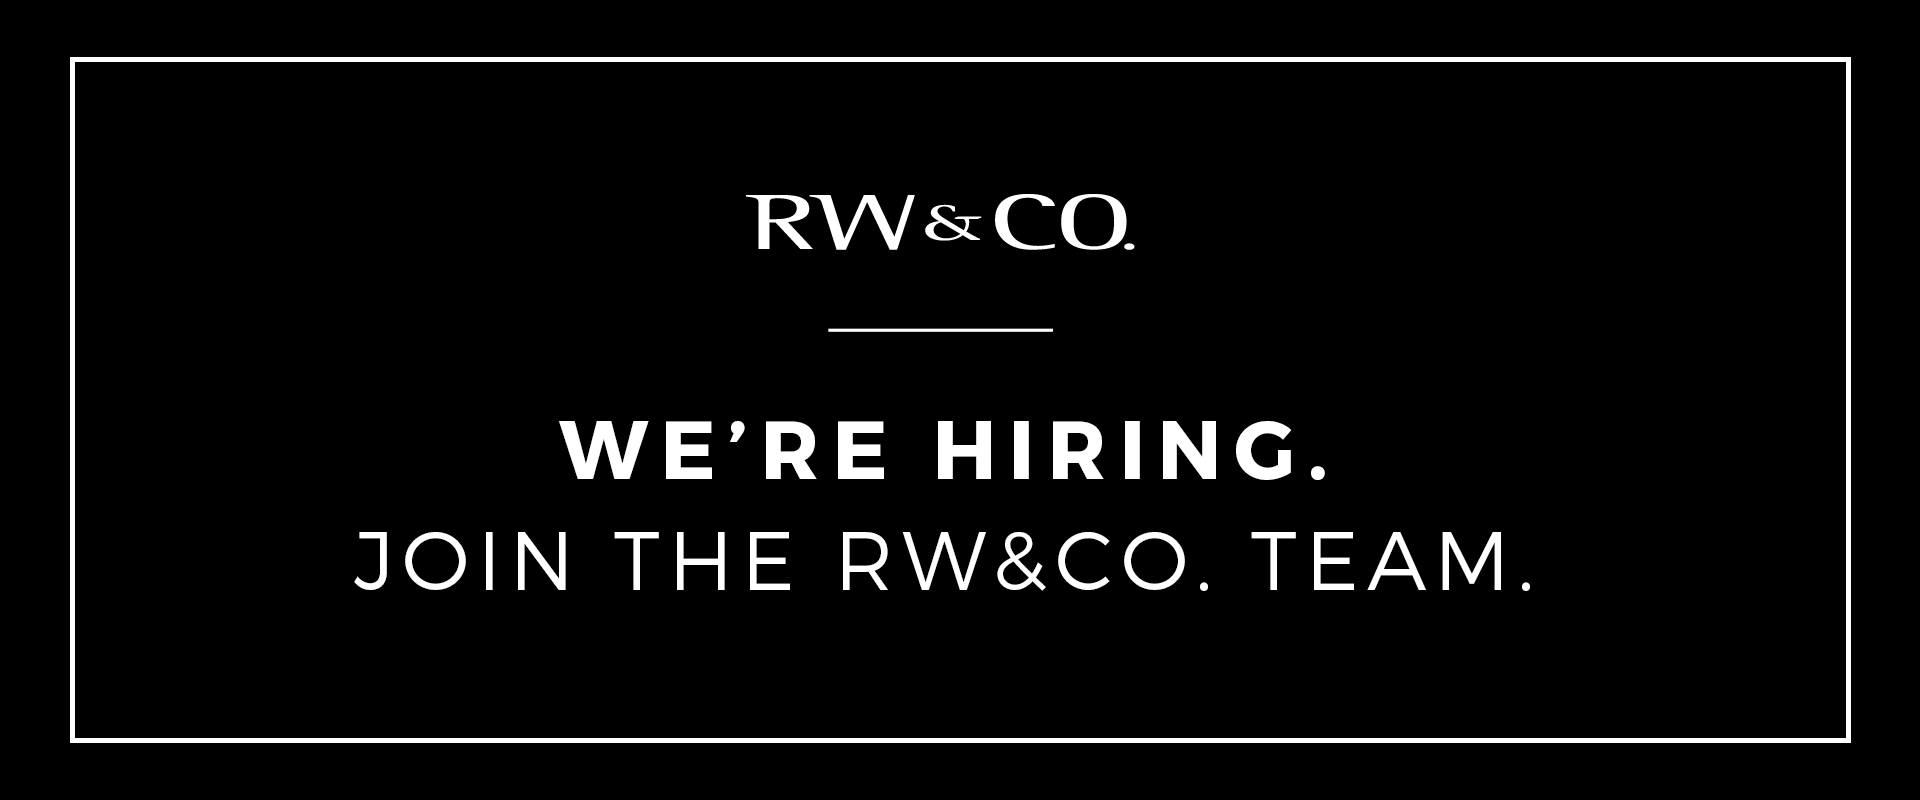 We're hiring. Join the RW&CO. team